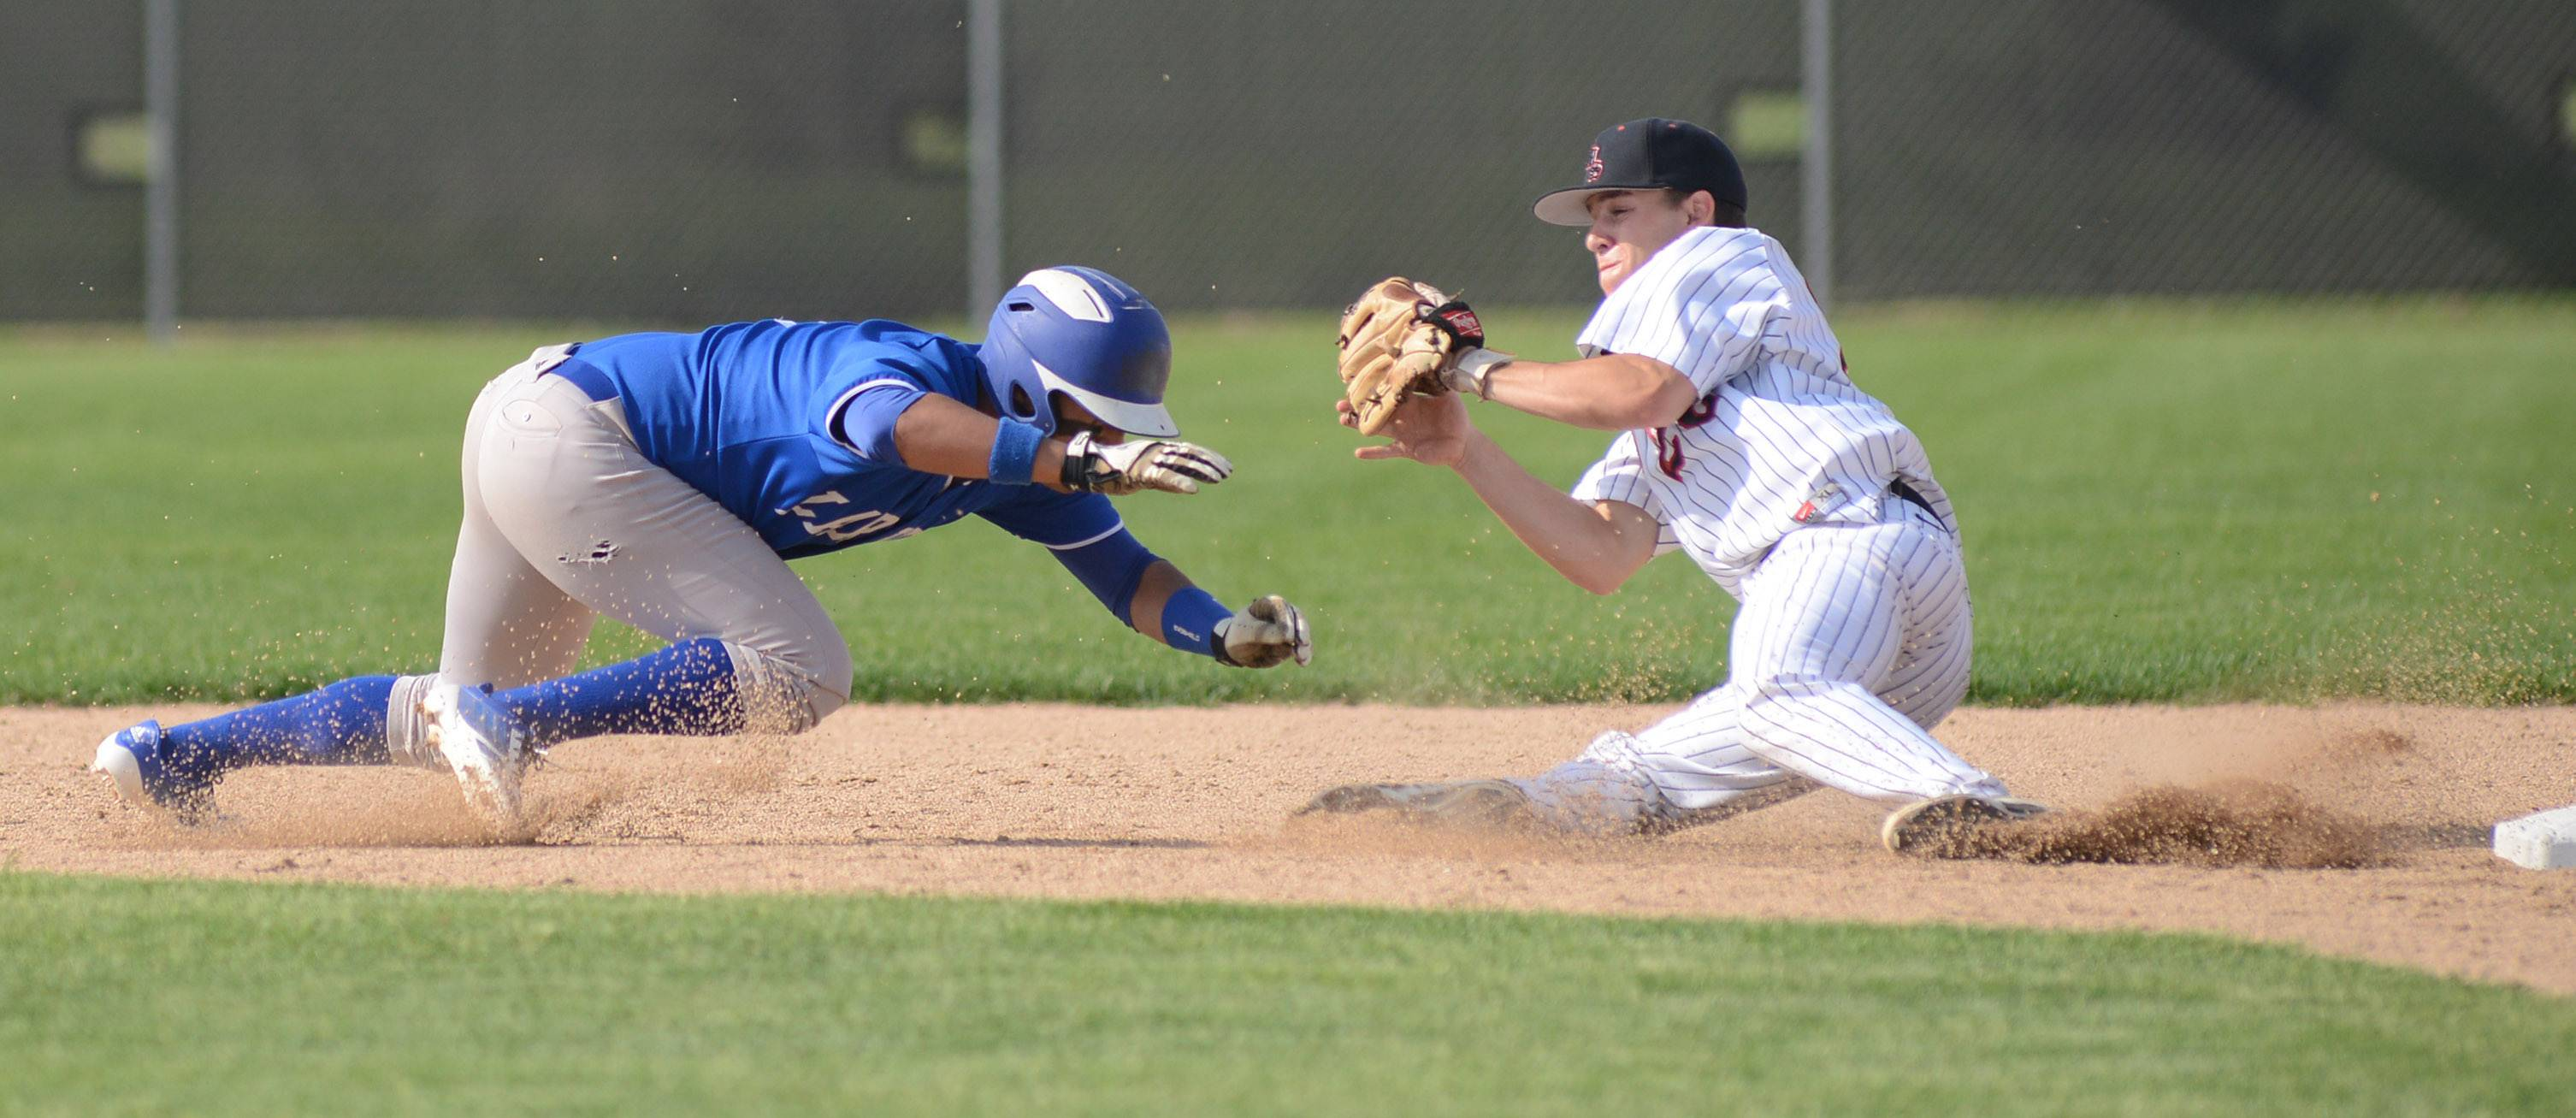 Larkin's Jonathan Avila, left, and Huntley's Matt Sullivan slide towards each other resulting in Avila being tagged out as he scrambles back to second base in the fifth inning of the Class 4A regional semifinals at DeKalb High School on Wednesday, May 28.